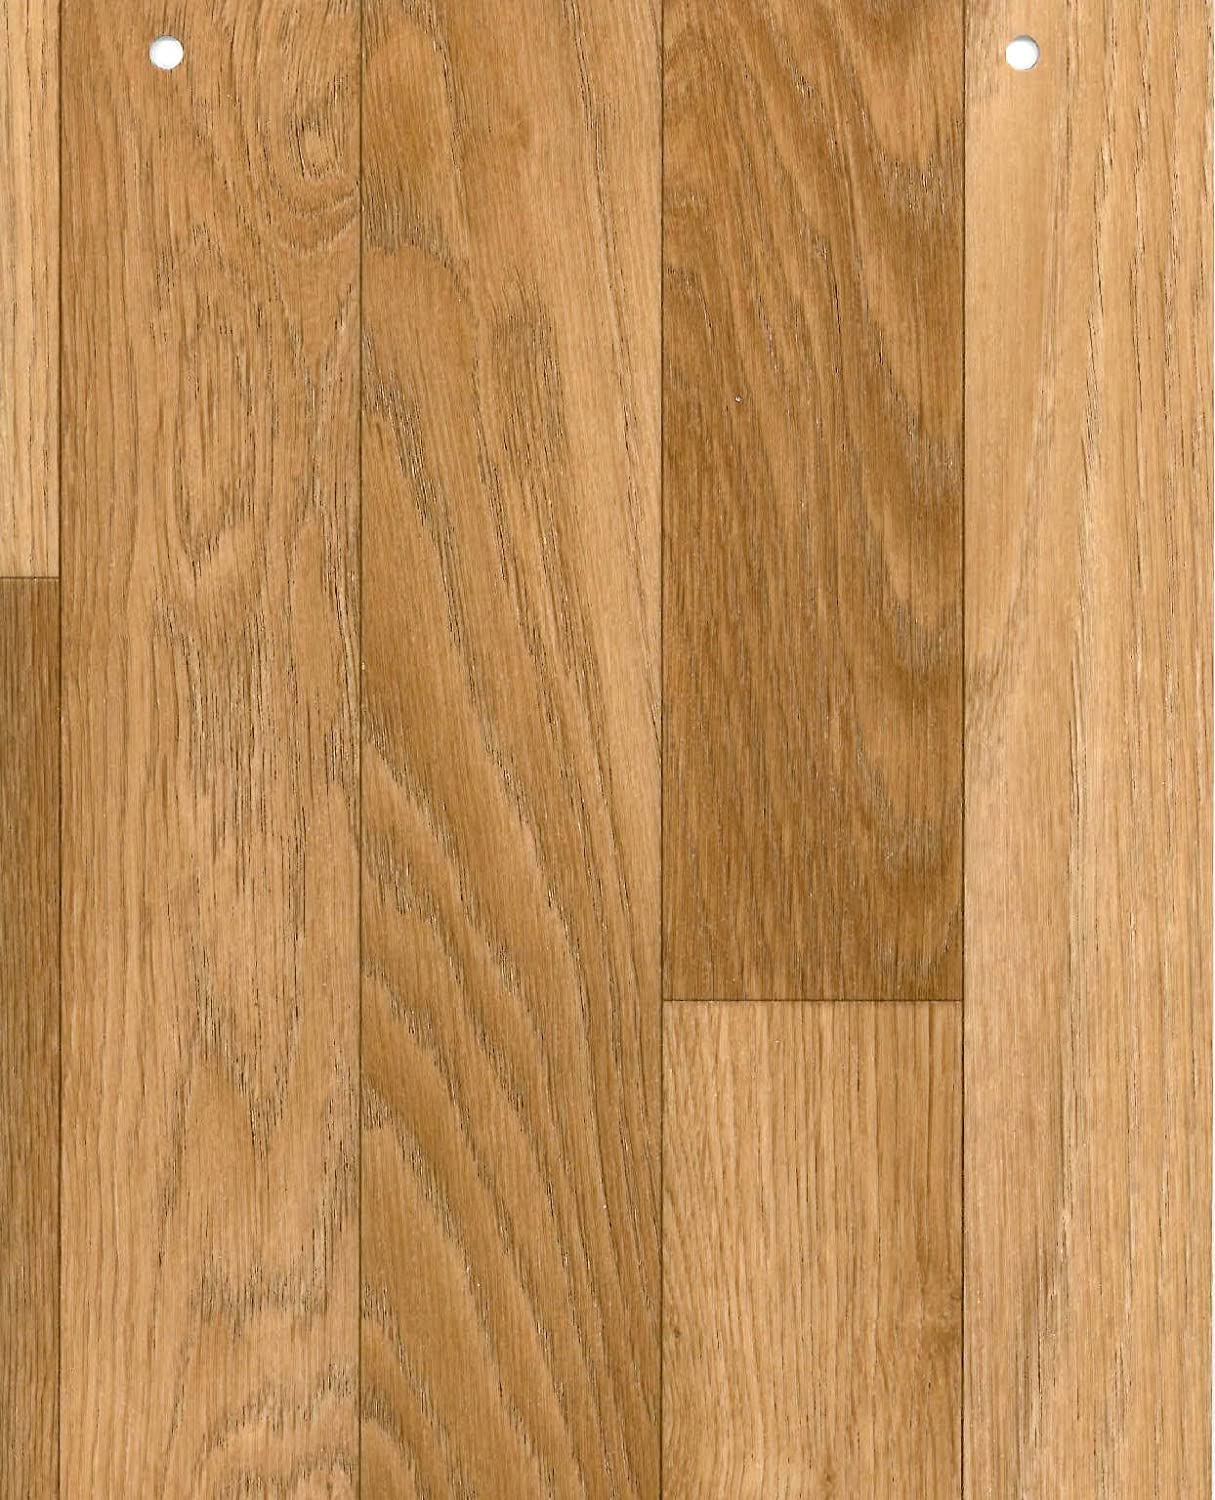 Vinyl floor tiles oak effect floor matttroy for Wood effect vinyl flooring bathroom